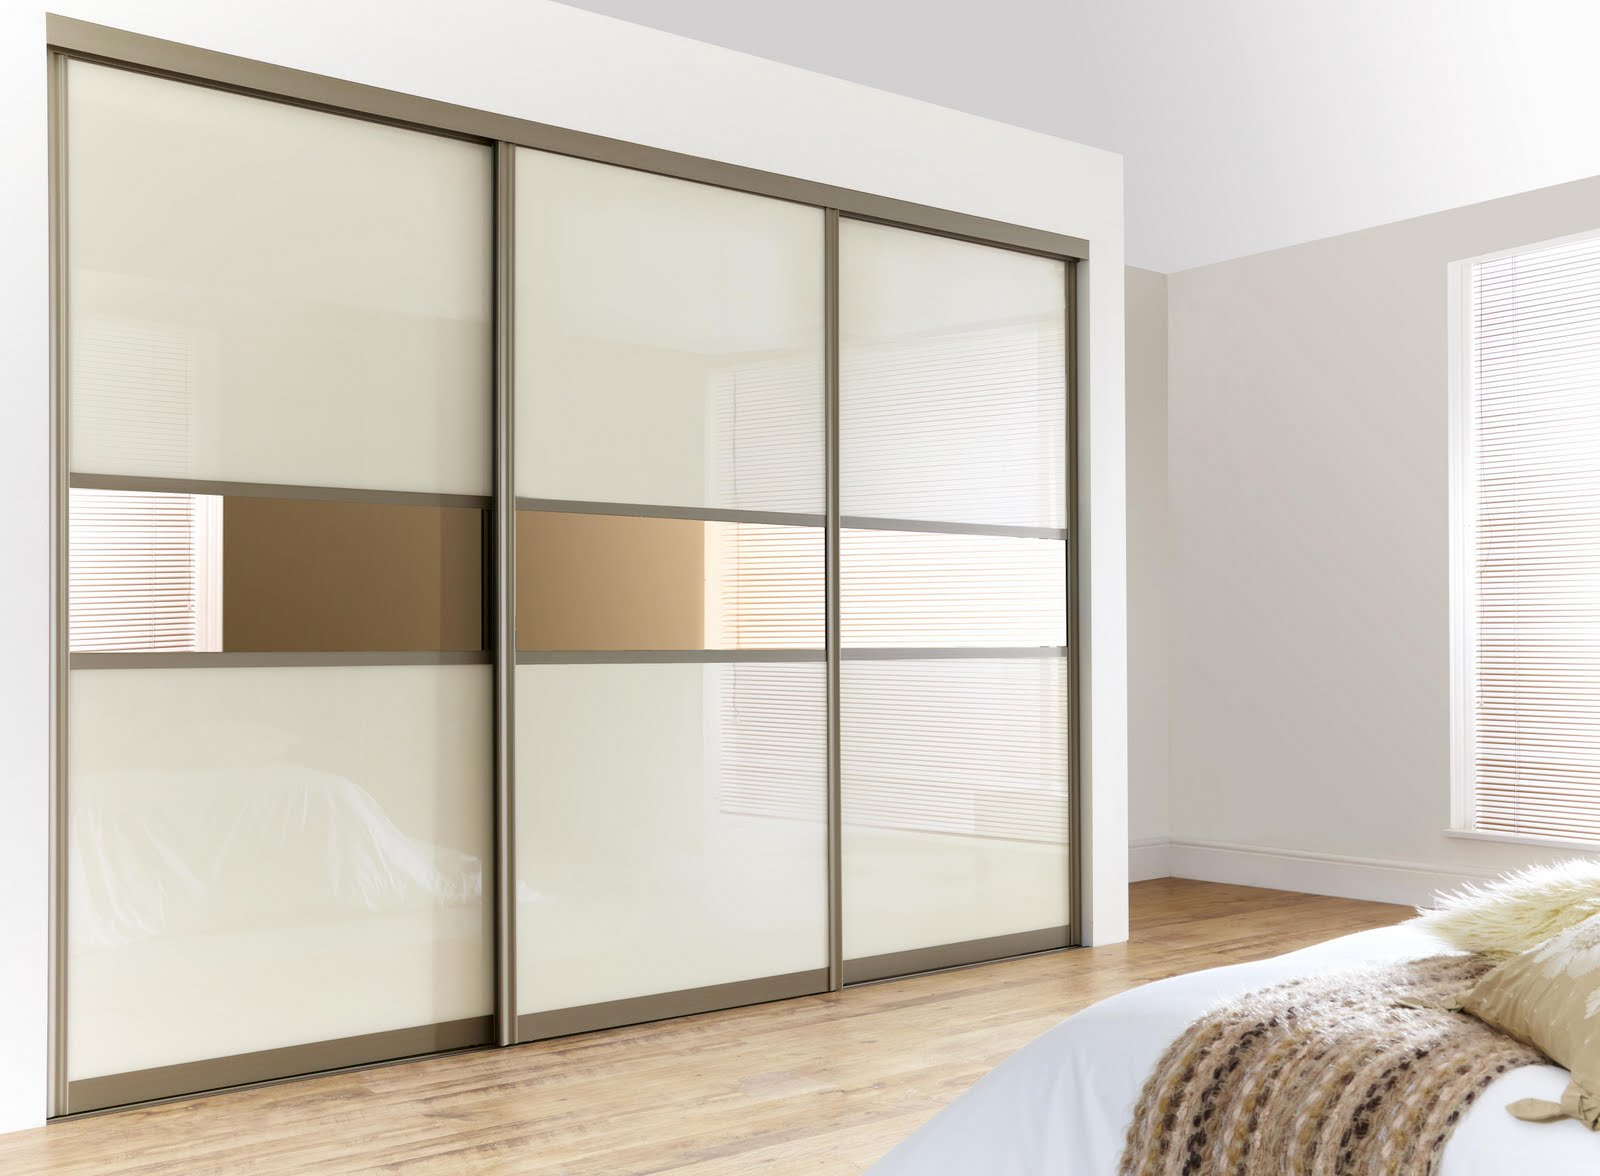 Bedroom Sliding Wardrobe Doors And Mirror